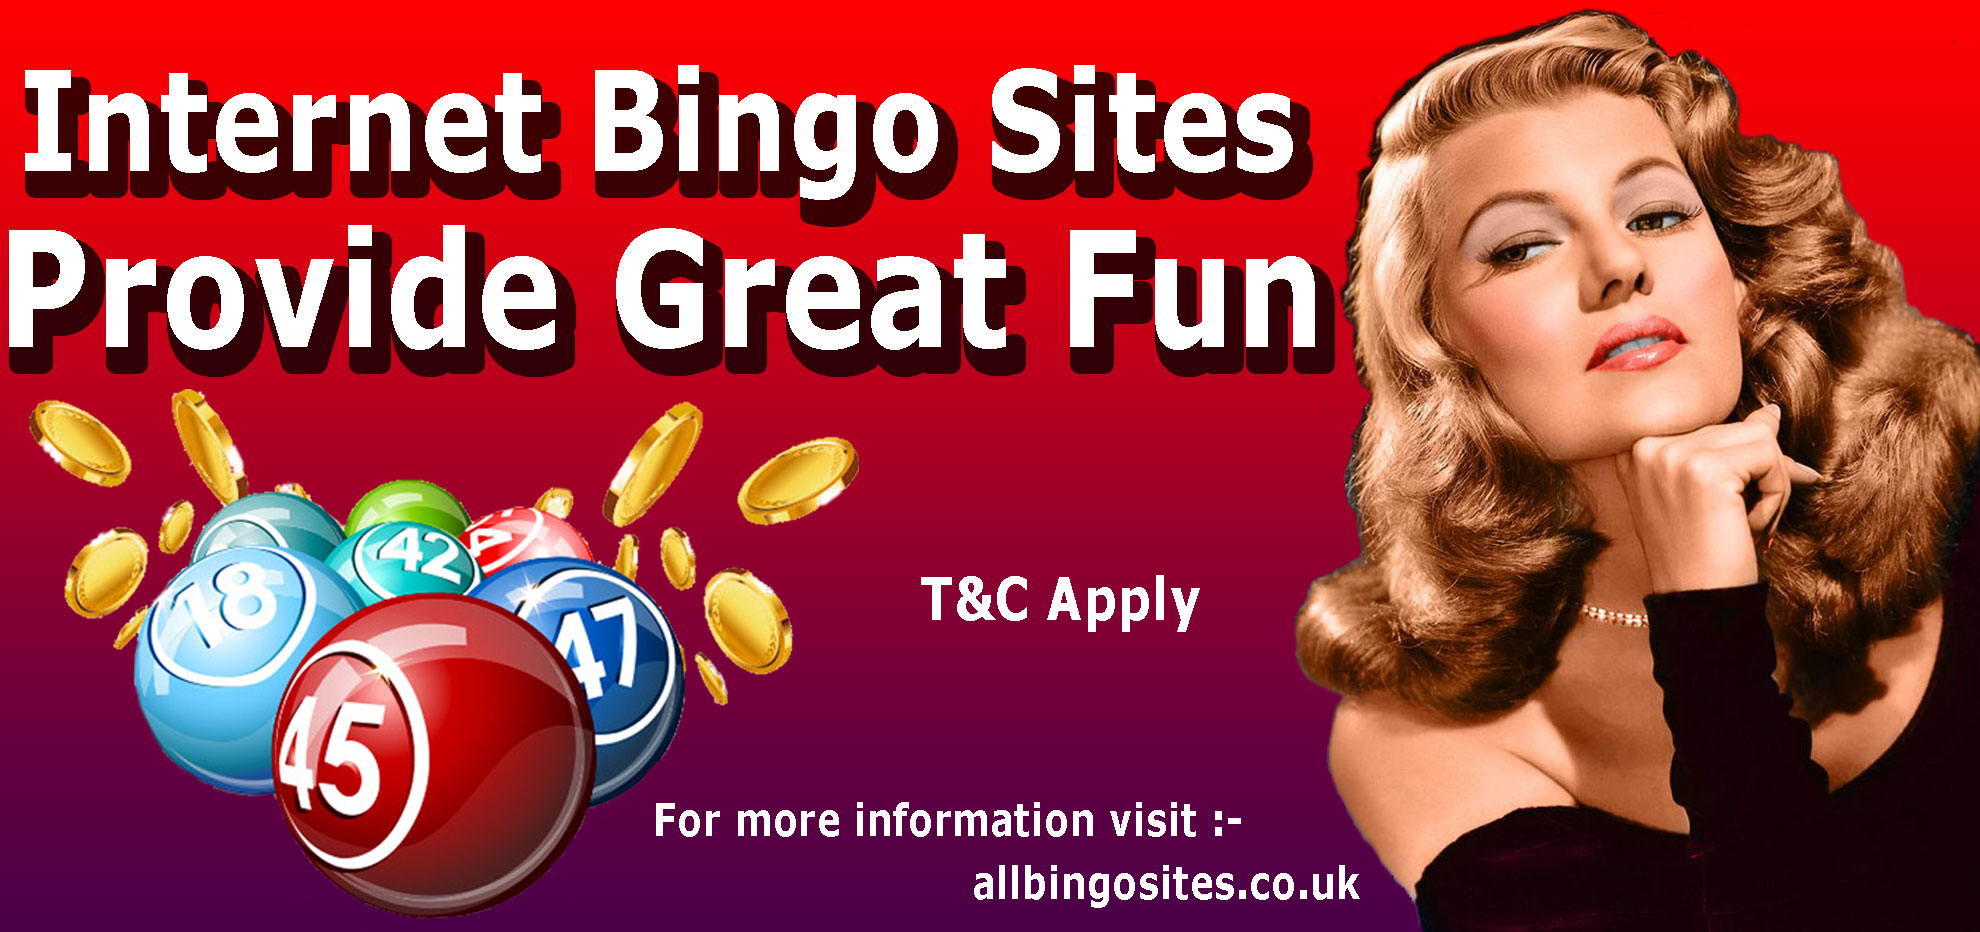 Internet Bingo Sites Provide Great Fun